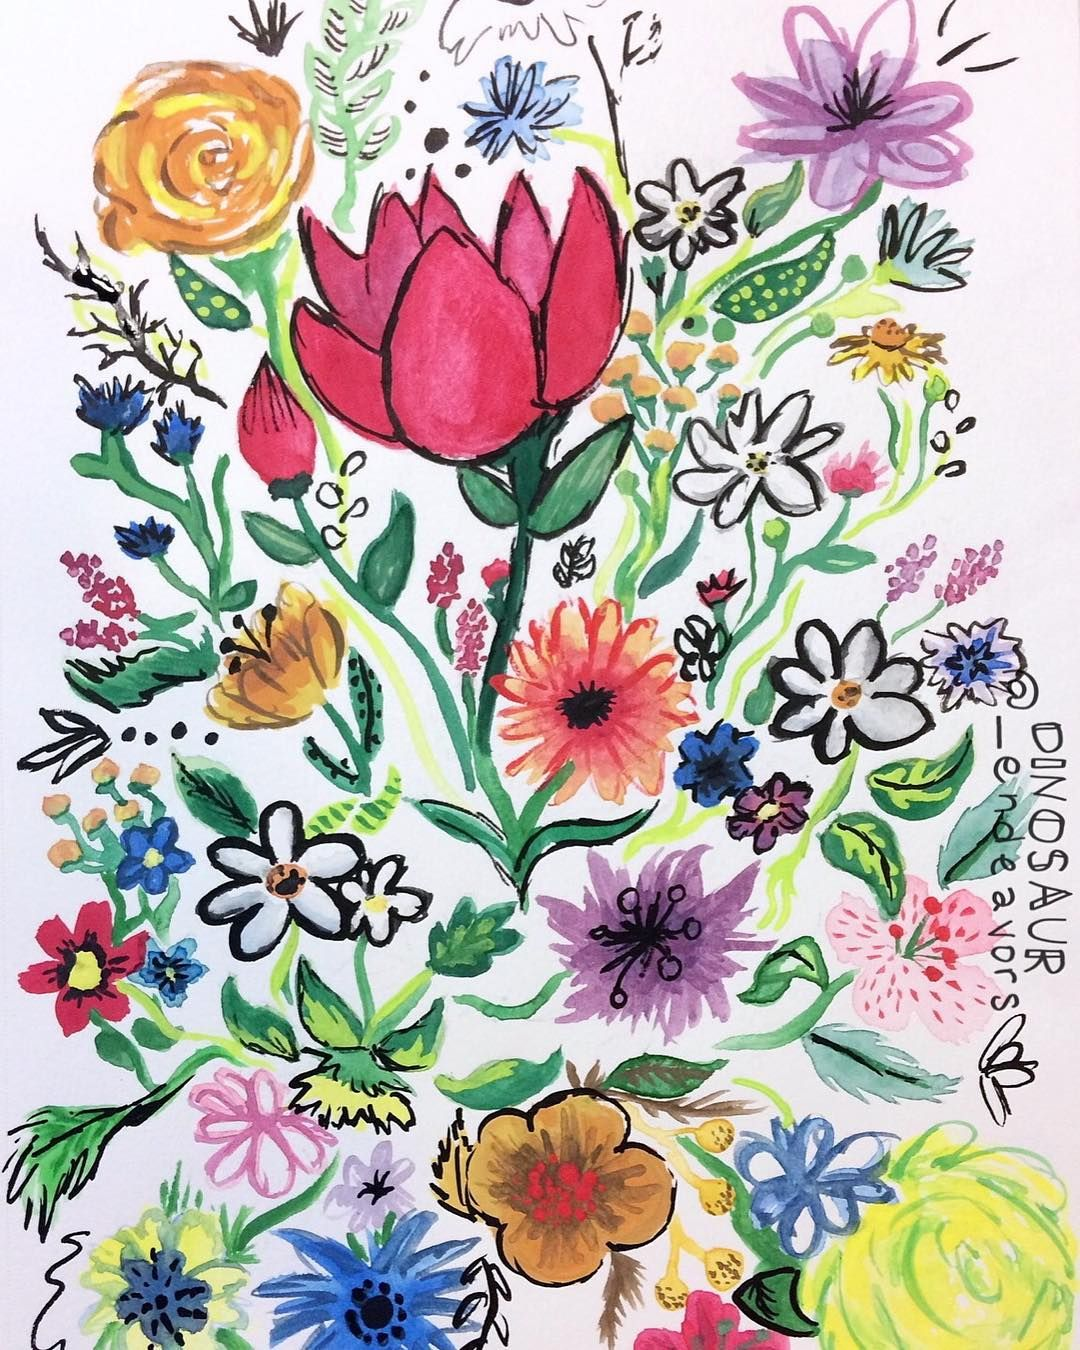 #art #artgallery #toagoodhome #doodle #flowers #ink #indiaink #color #watercolor #illustration #floral #🌸 #🌷 #💐 #🌺 #ObscureTheDinosaur #DinosaurEndeavors